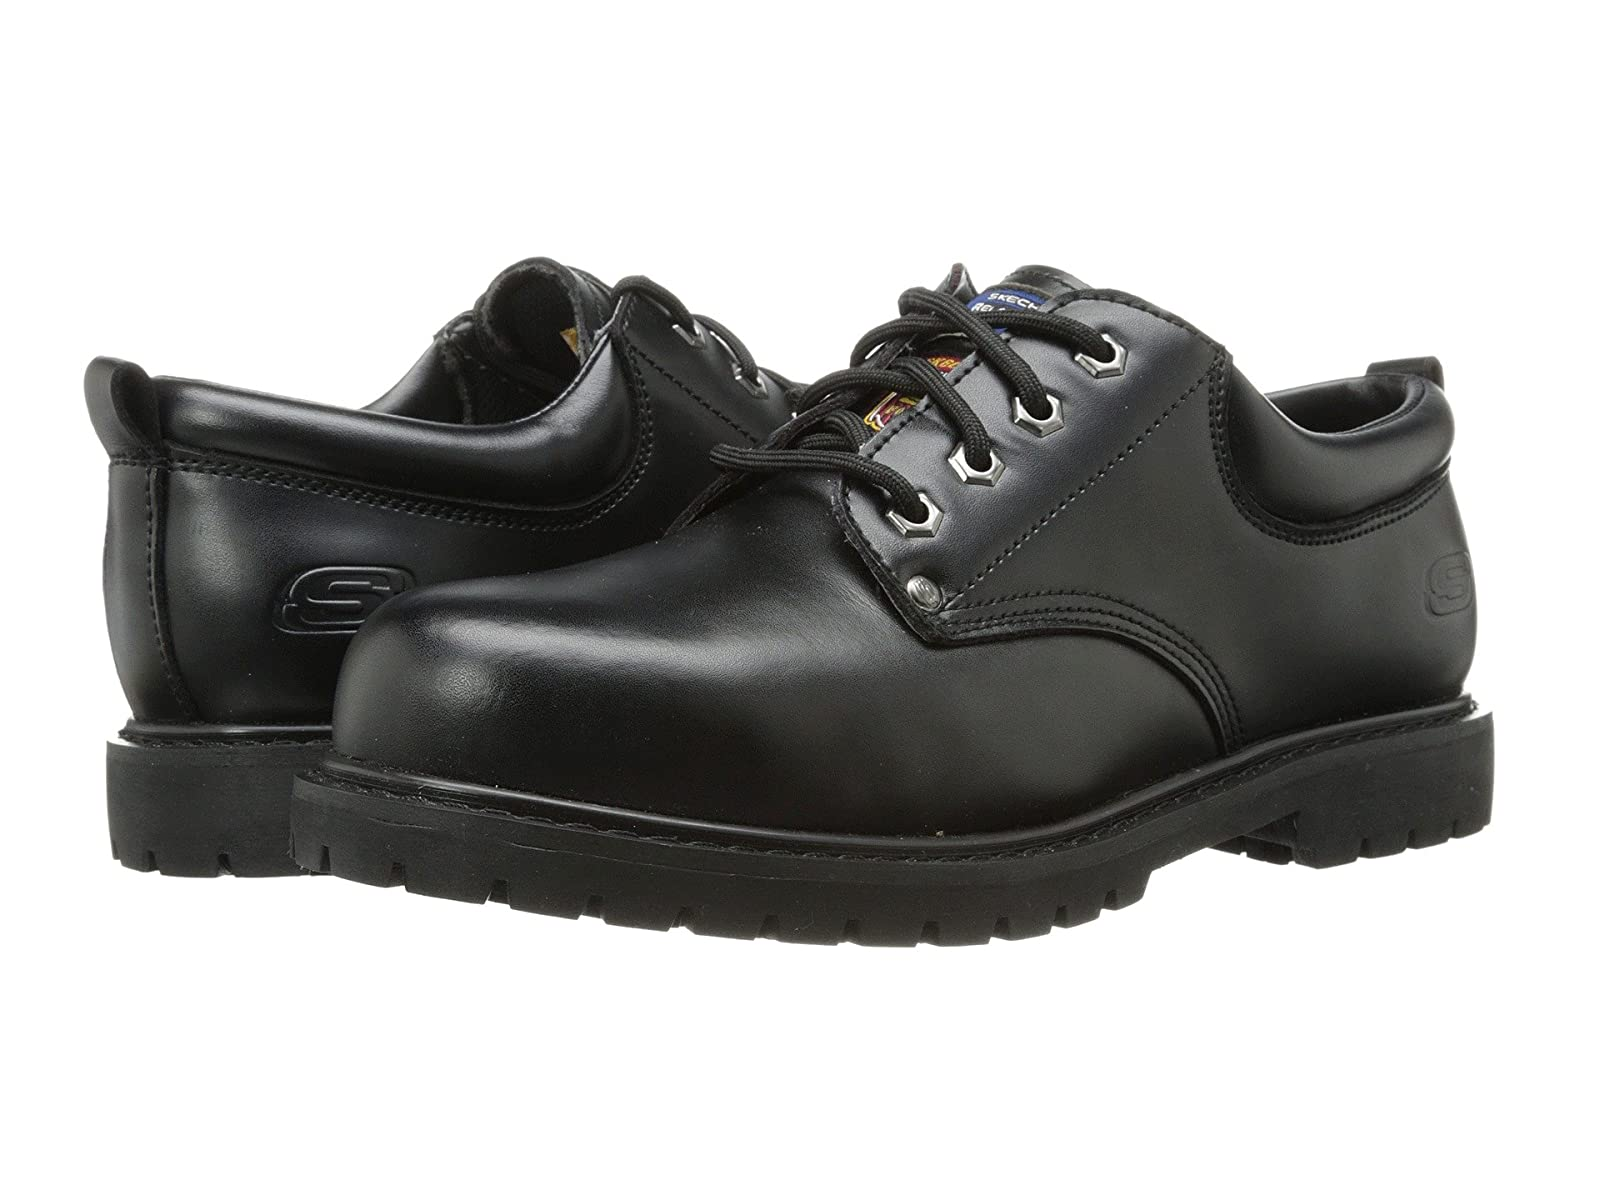 SKECHERS Work Work Work Cottonwood - Cropper e0b59d